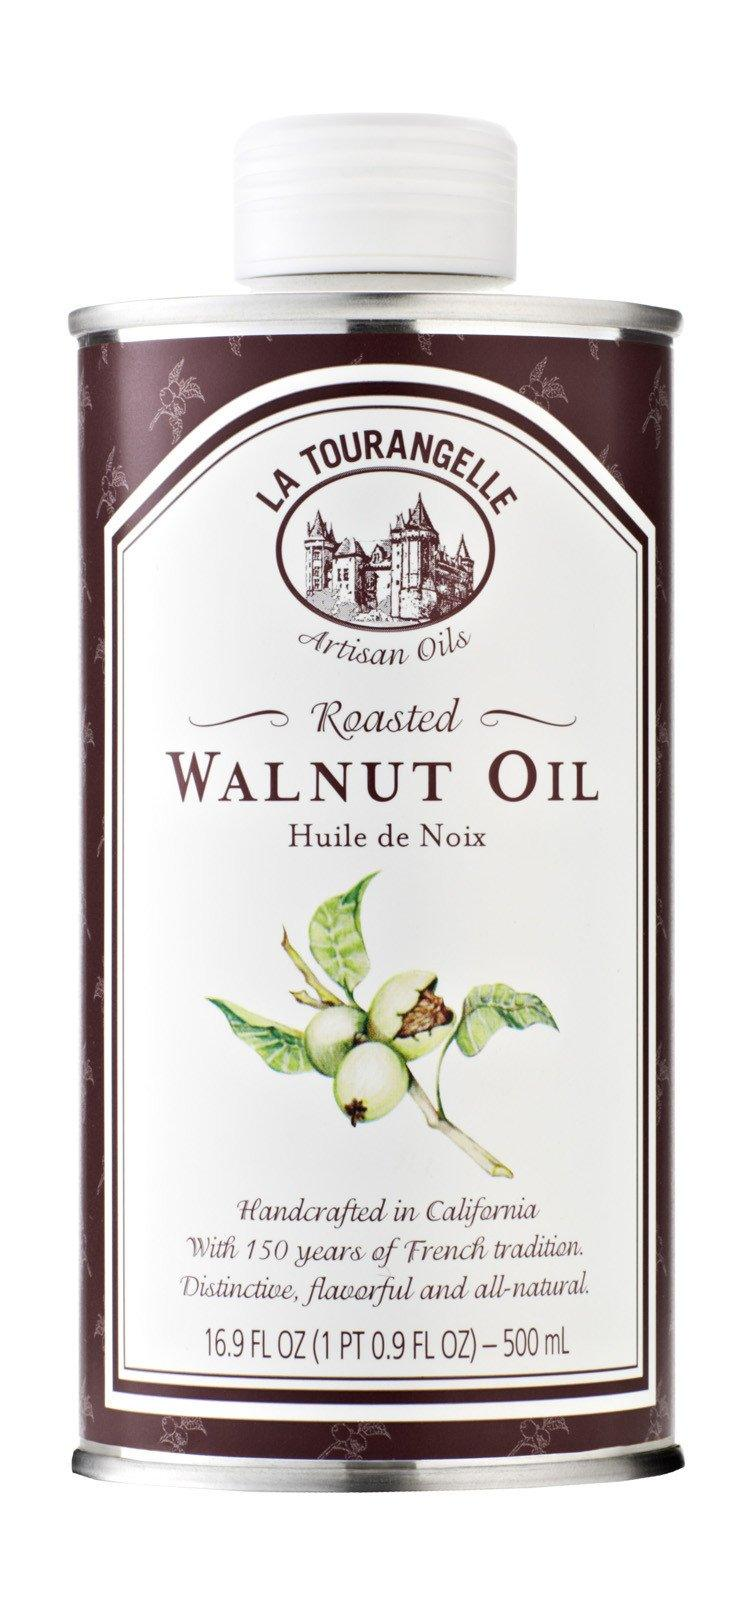 Food & Drink - La Tourangelle - Roasted Walnut Oil, 500ml